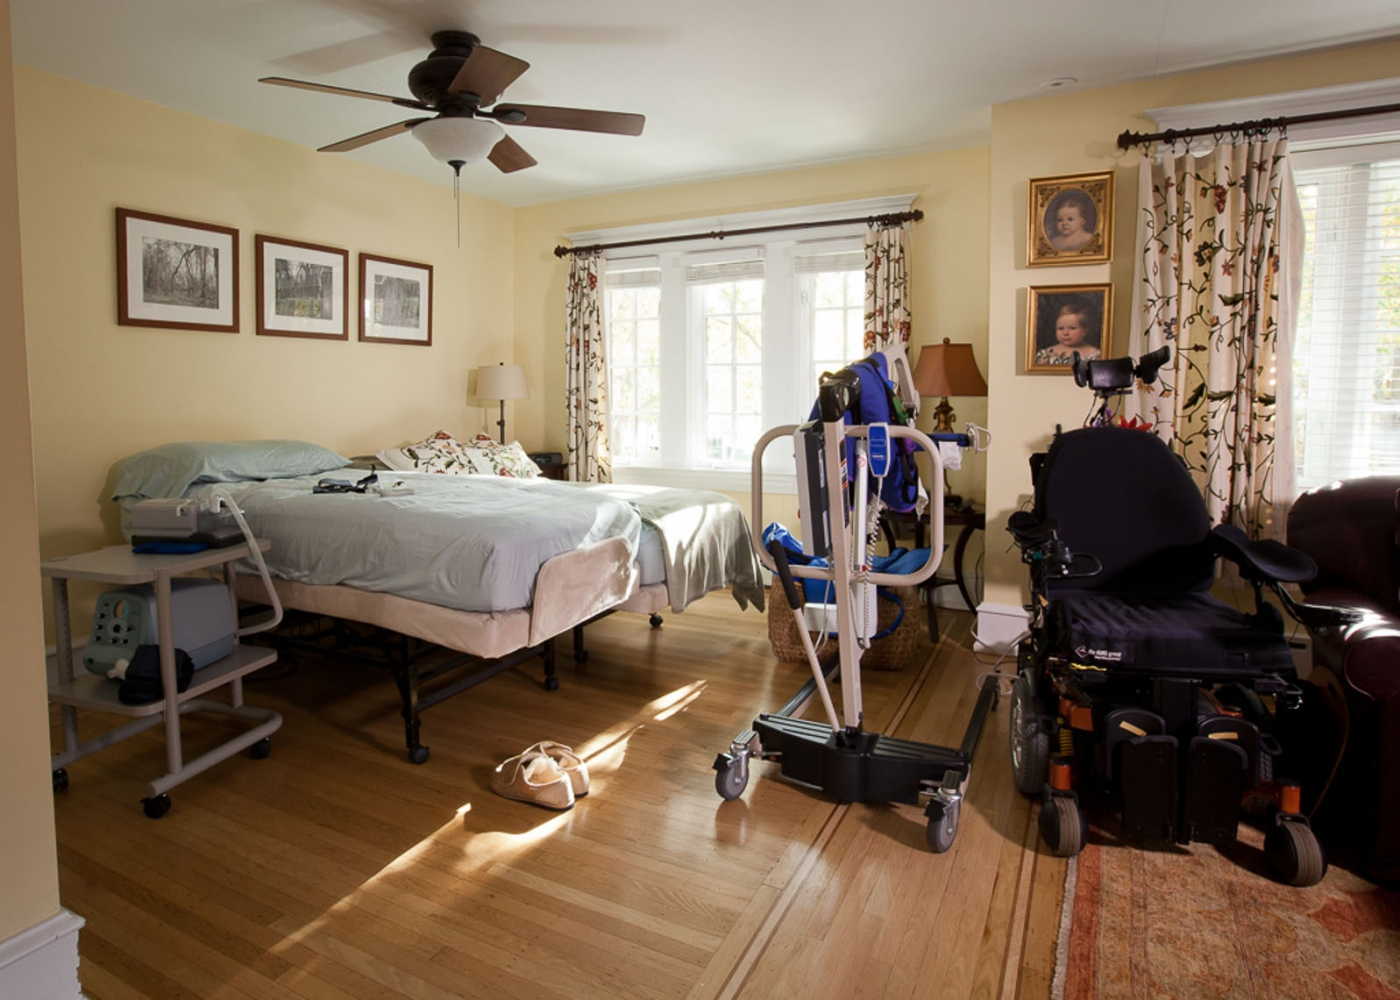 Steve and Pam have spent thousands of dollars on medical equipment including a hospital bed, wheelchair, lift and elevator. House renovations cost the couple over $50,000 to make it wheelchair accessible. For Money Magazine